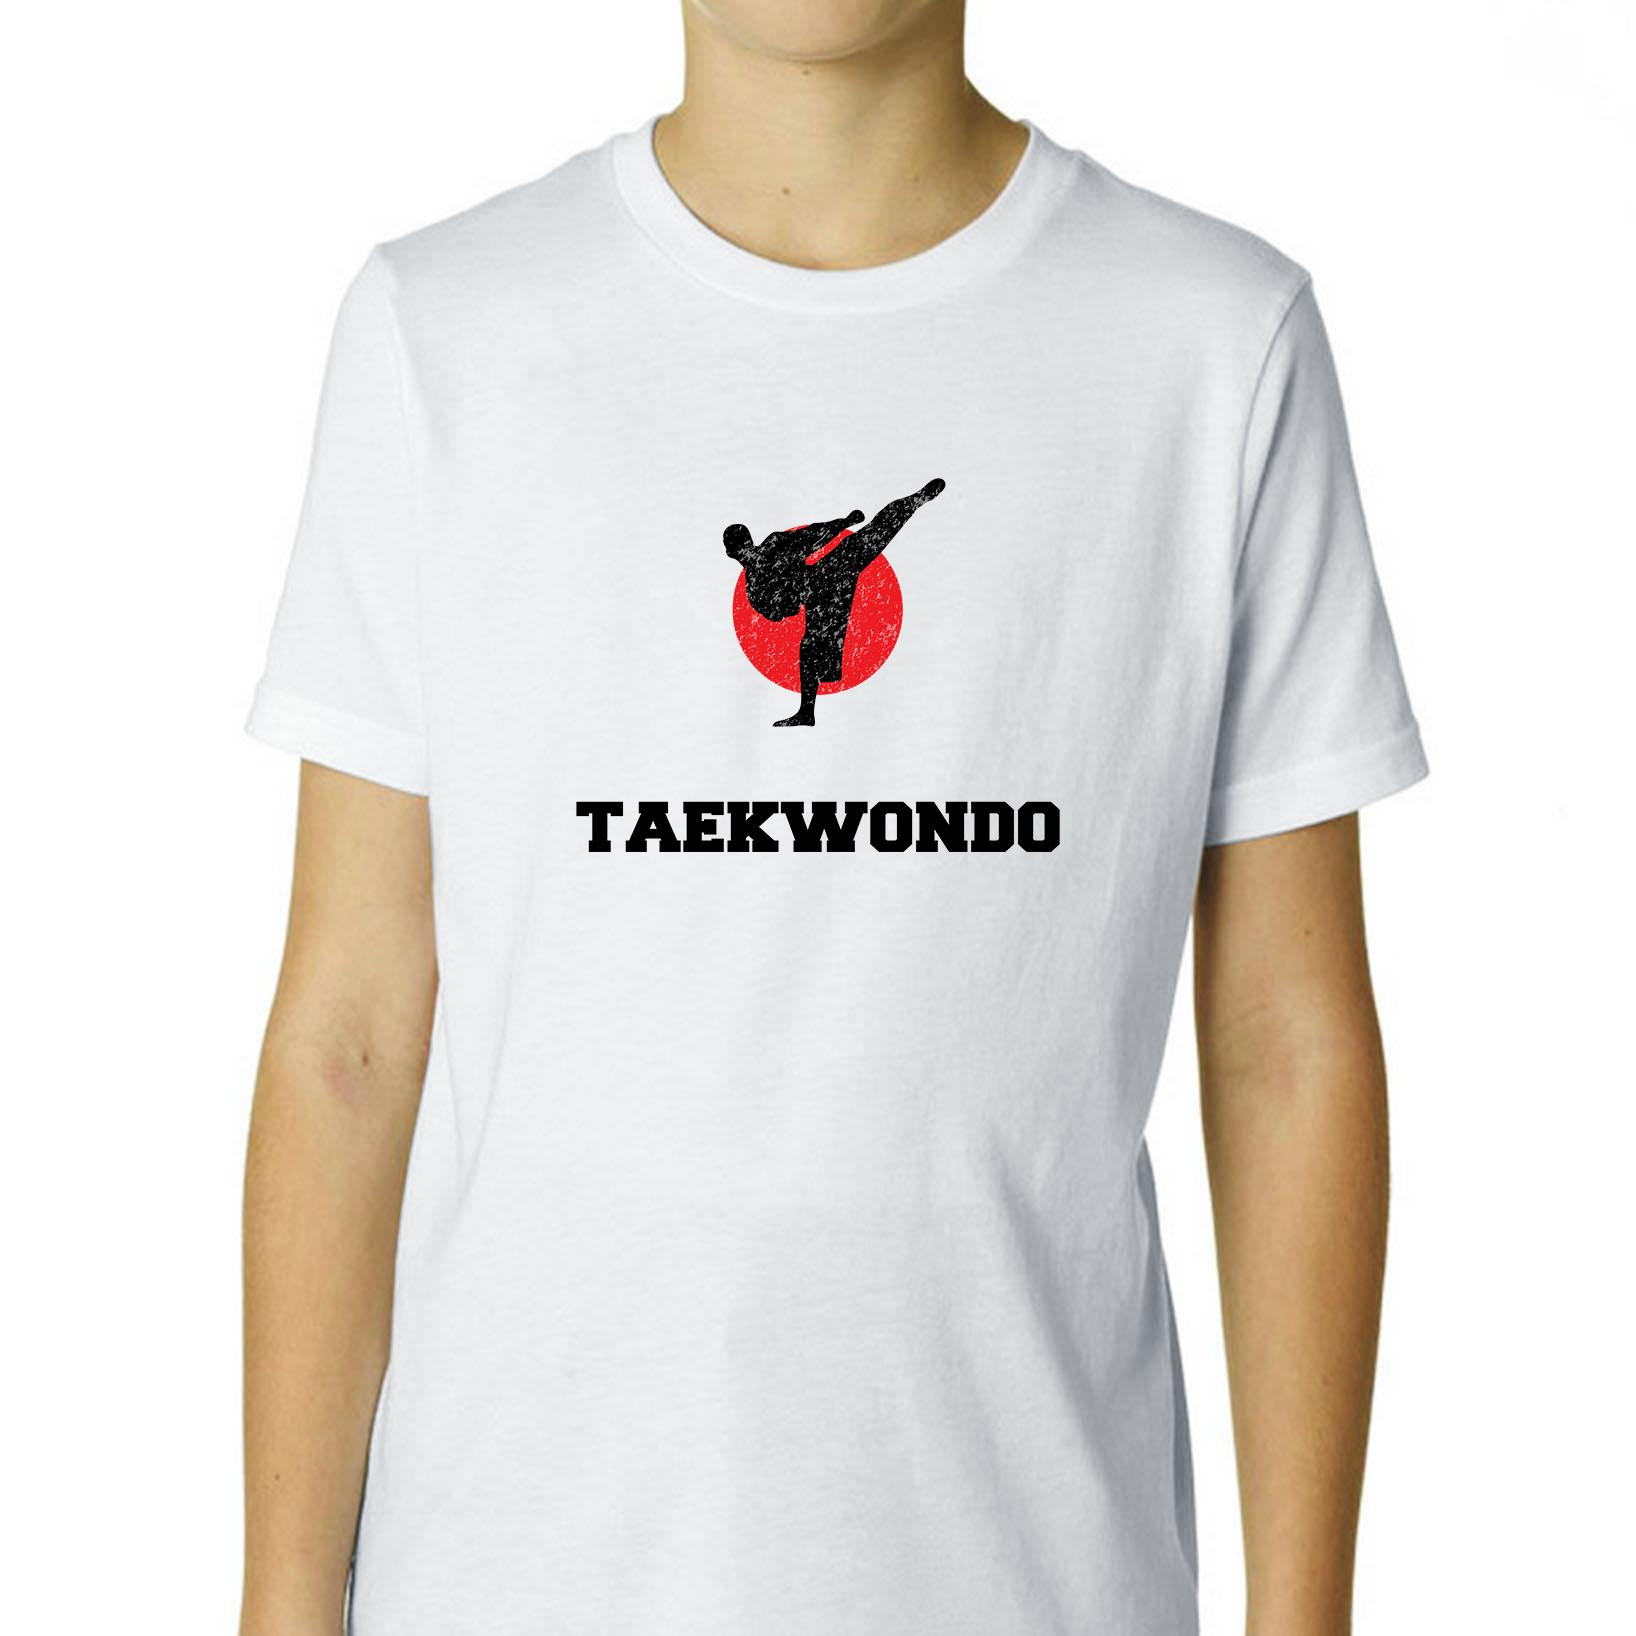 Japan Olympic - Taekwondo - Flag - Silhouette Boy's Cotton Youth T-Shirt